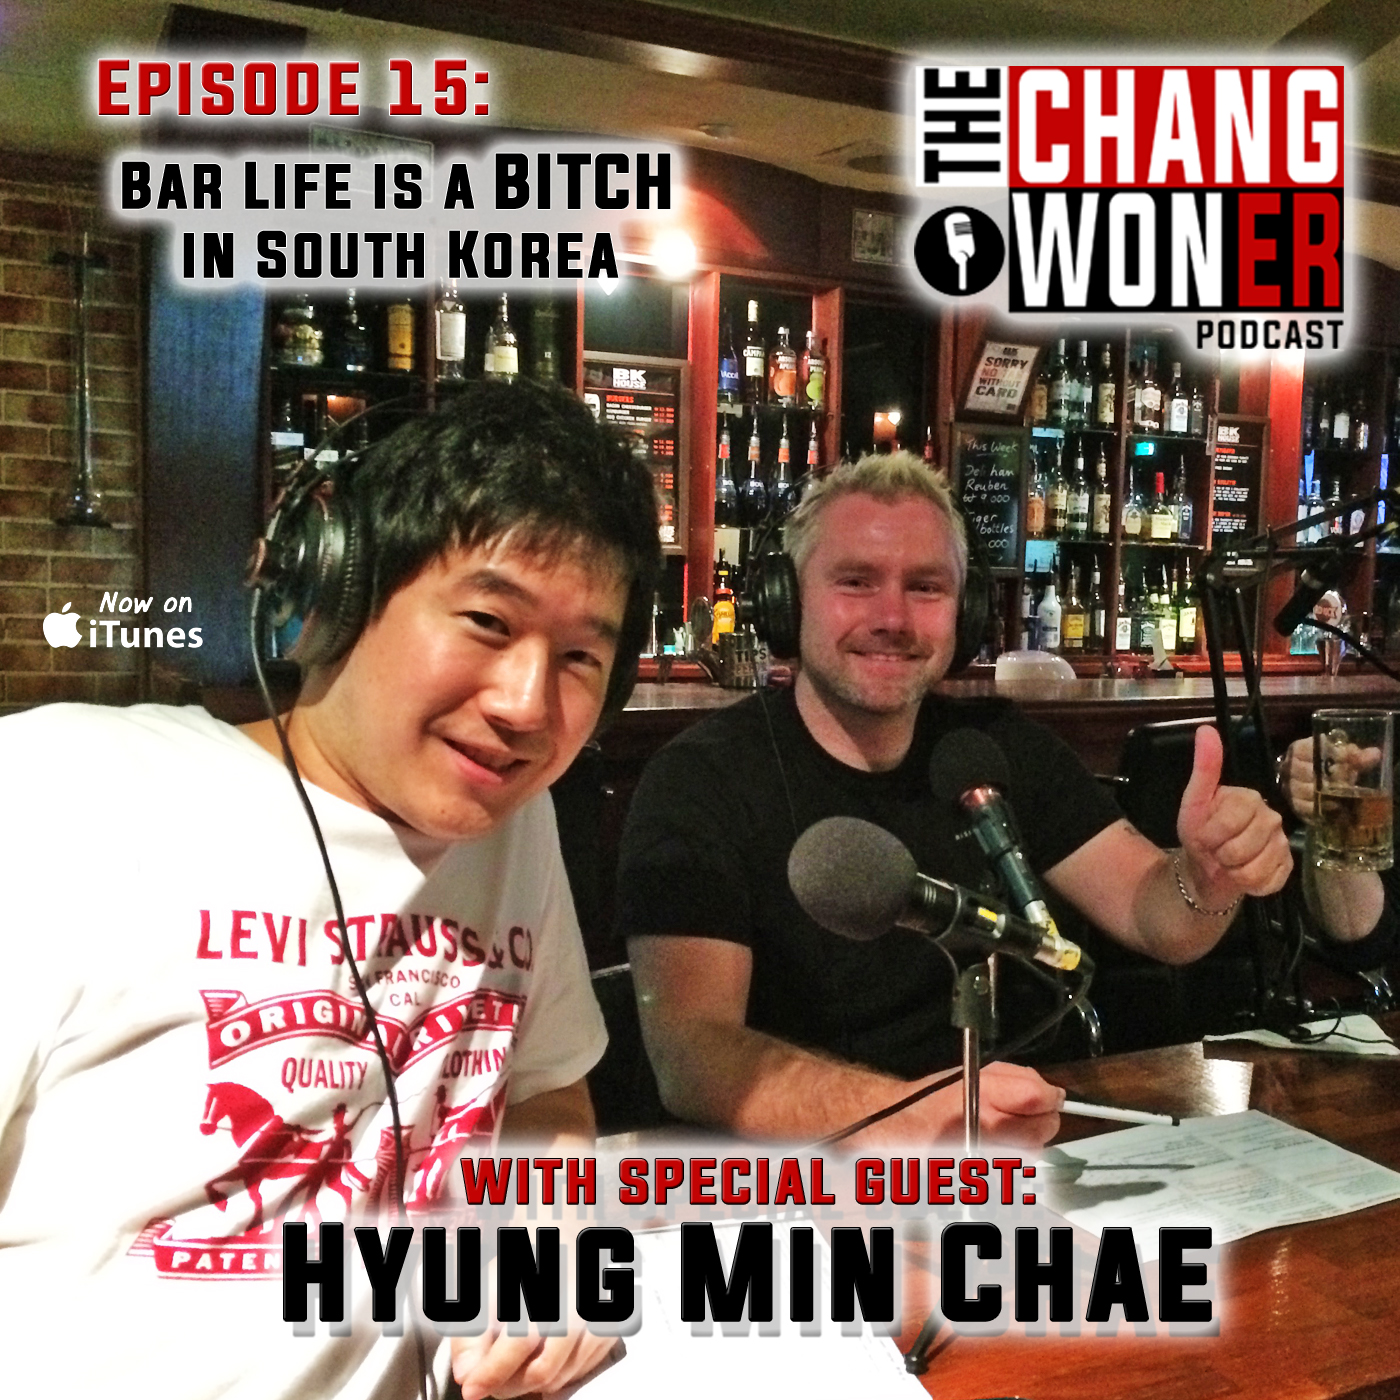 Artwork for Running a Bar in South Korea. Bar Life is a BITCH!  –guest Hyung Min Chae (Ep 15)